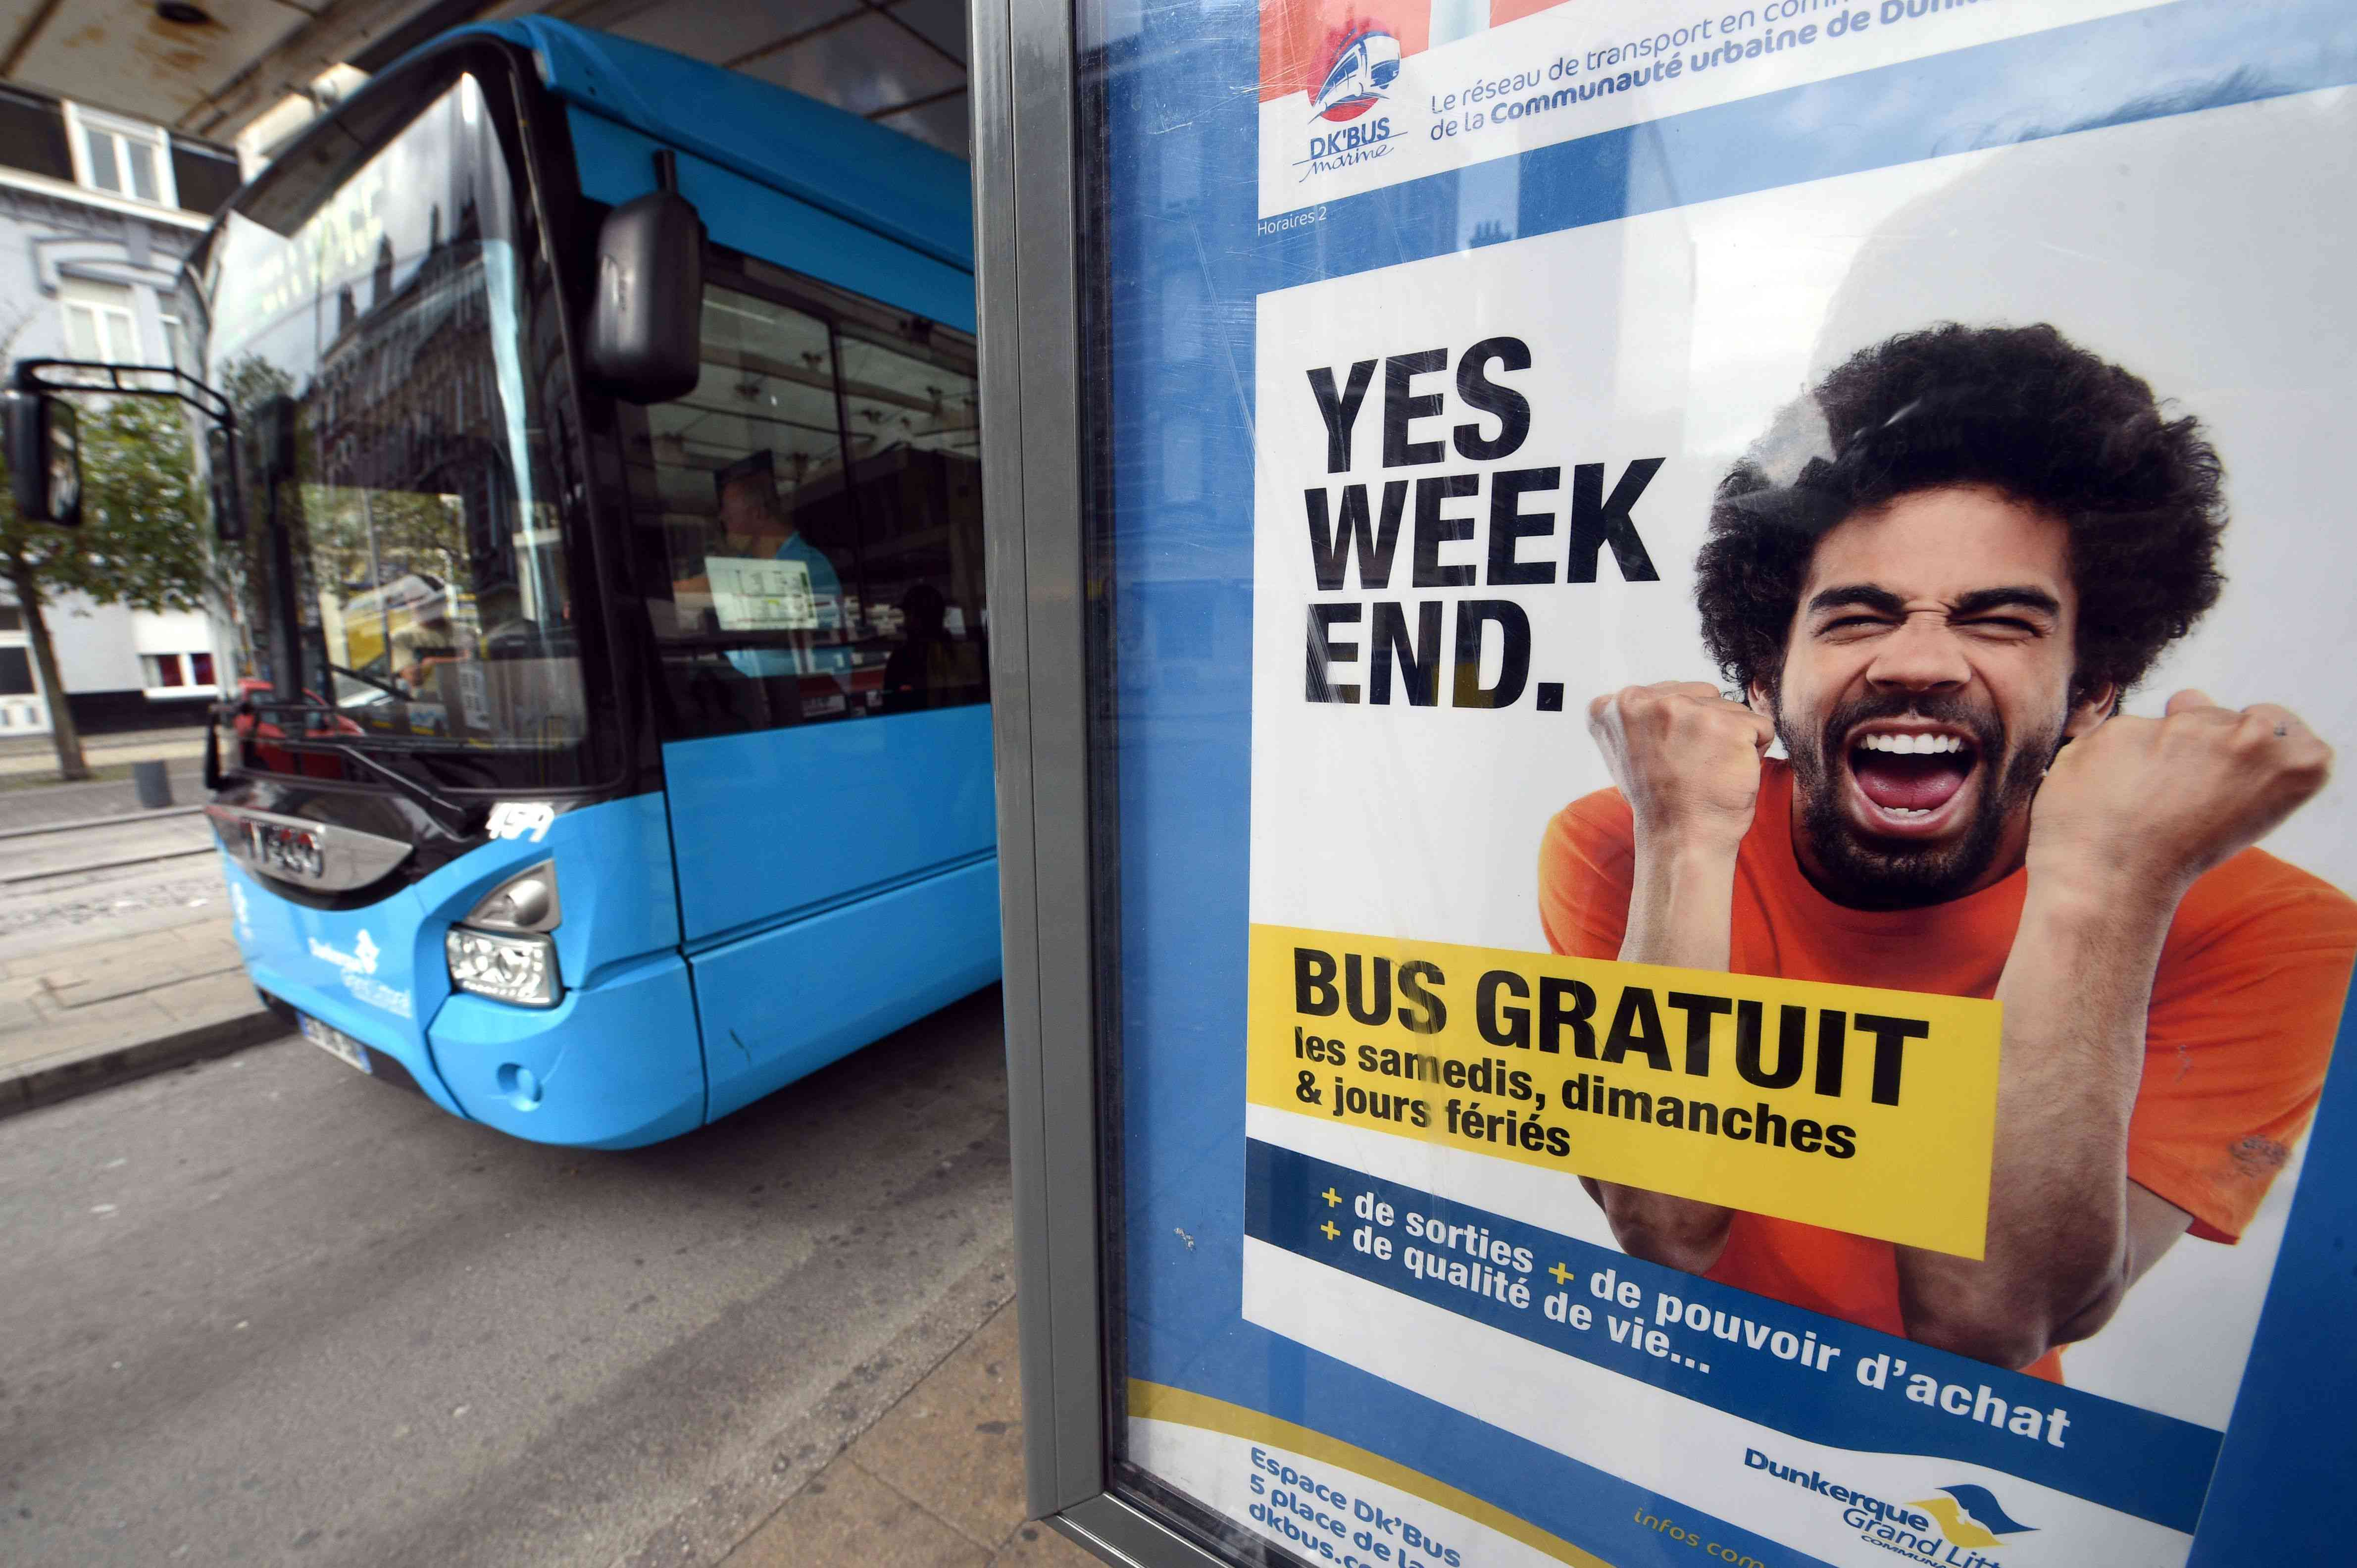 A sign advertising free weekend bus service in Dunkirk, France